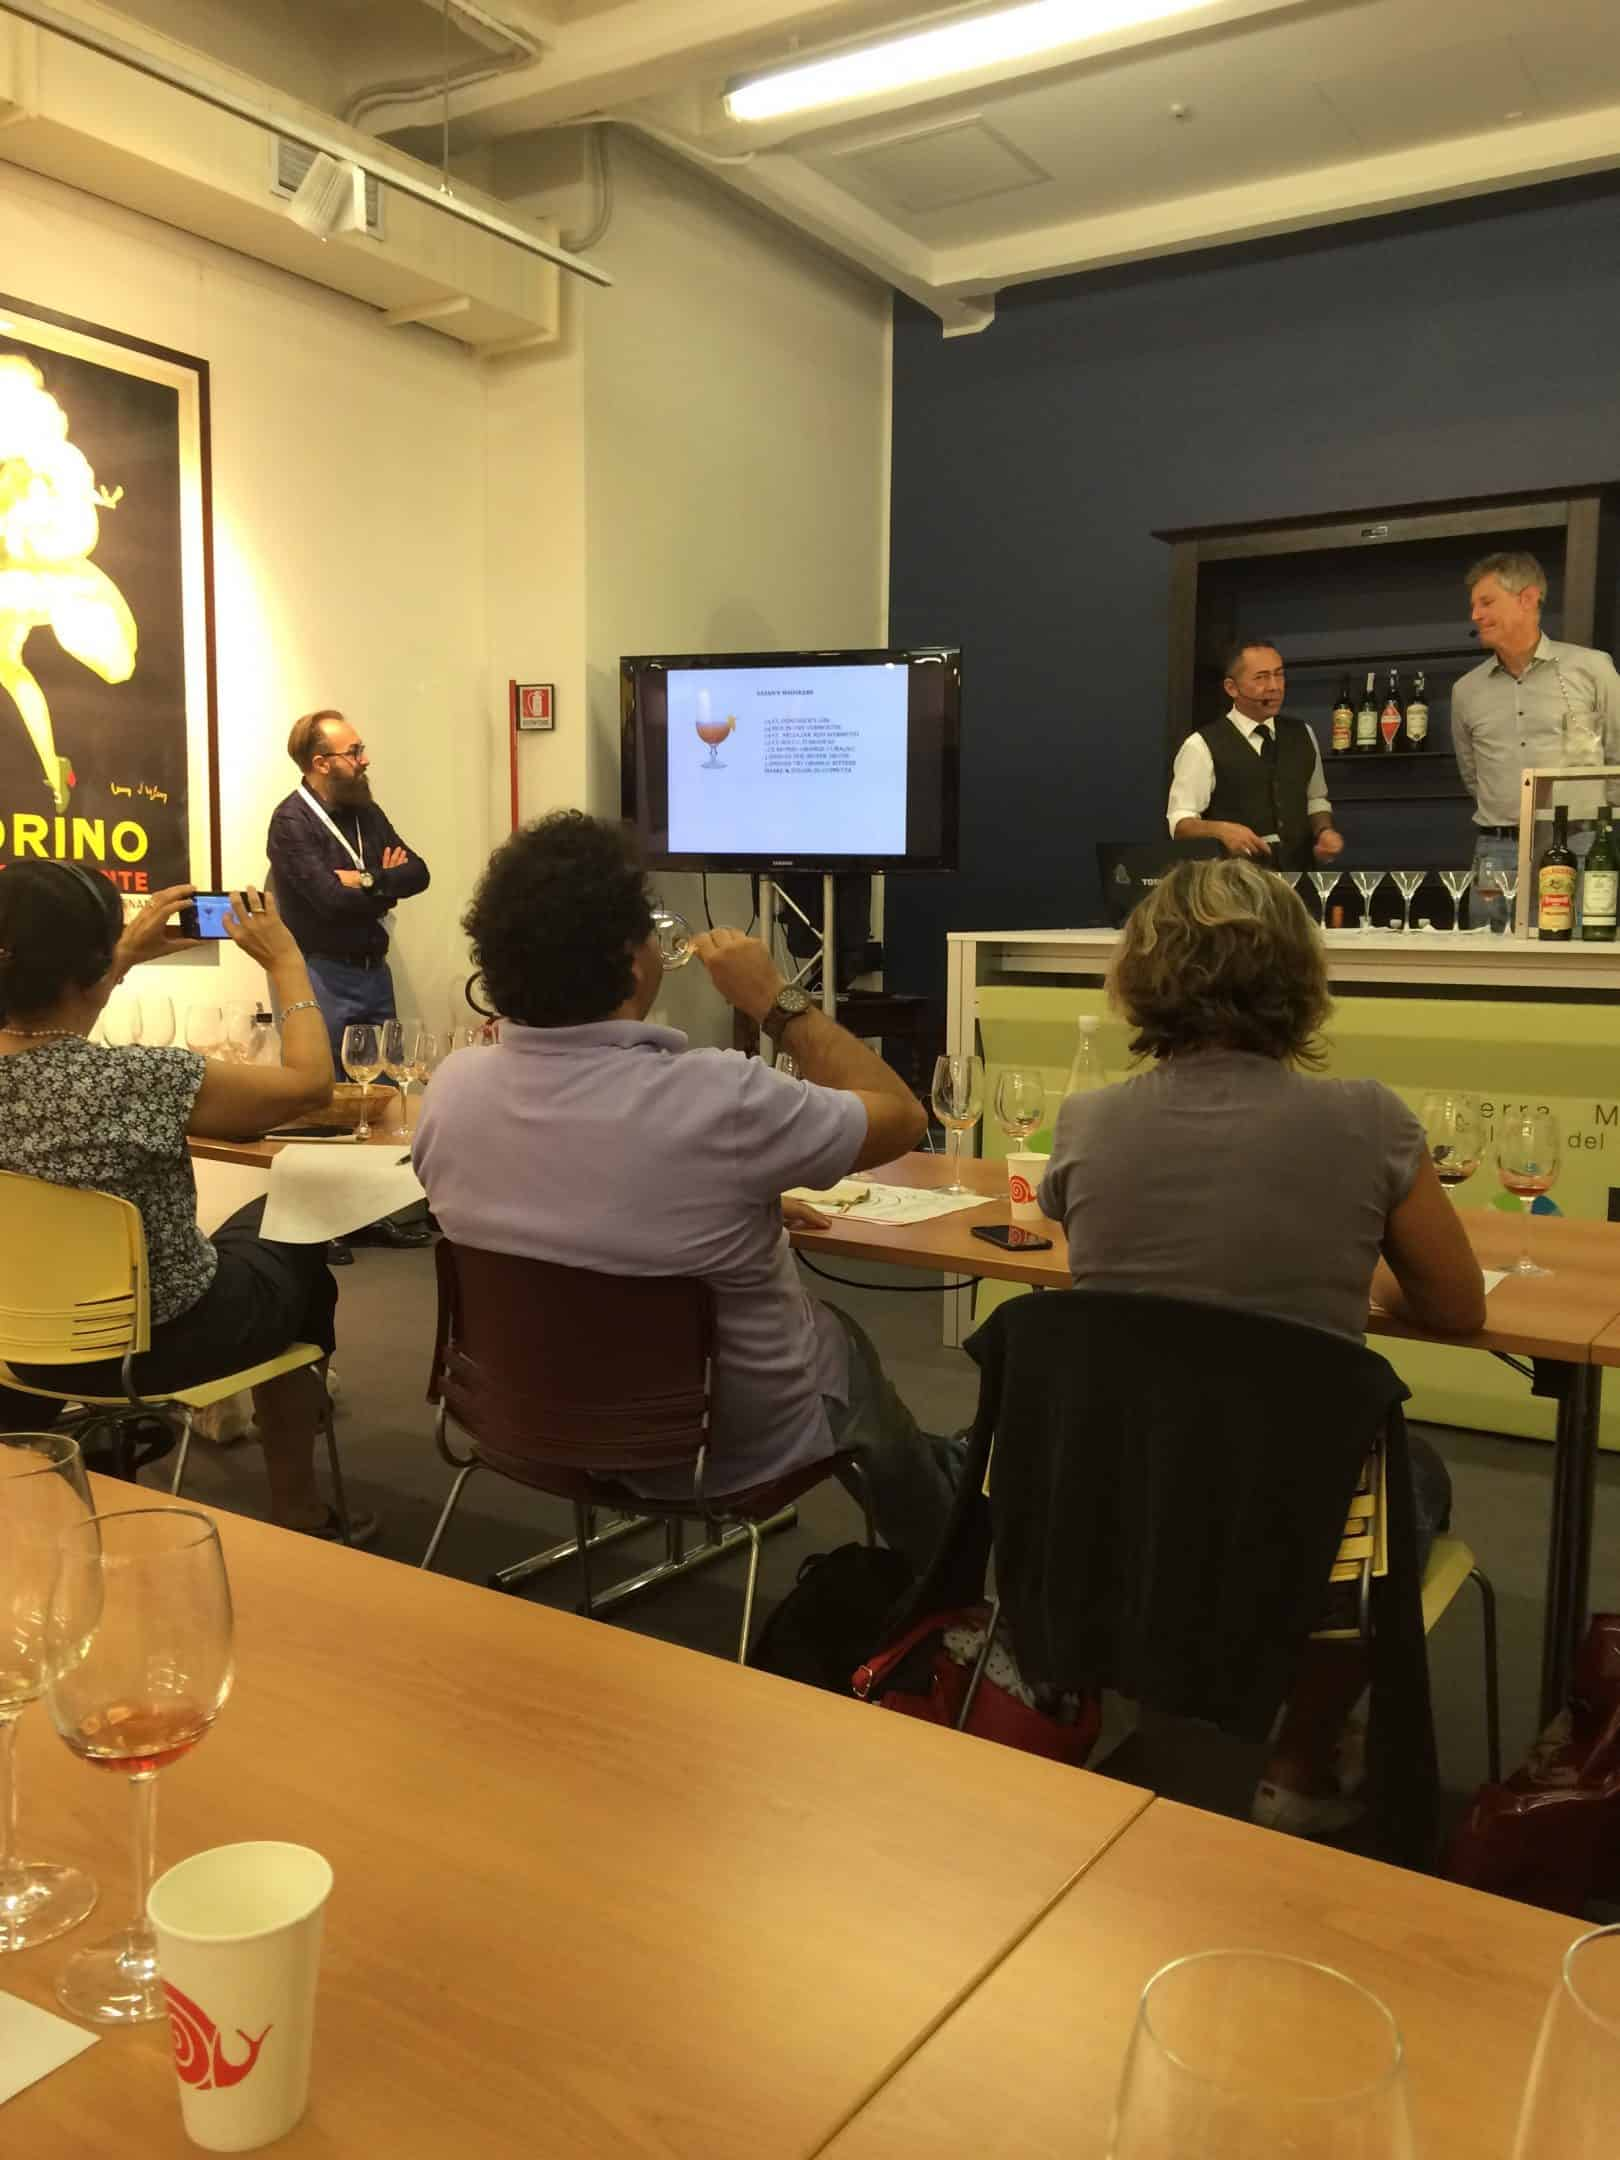 Vermouth tasting at Terre Madre, Turin 2016